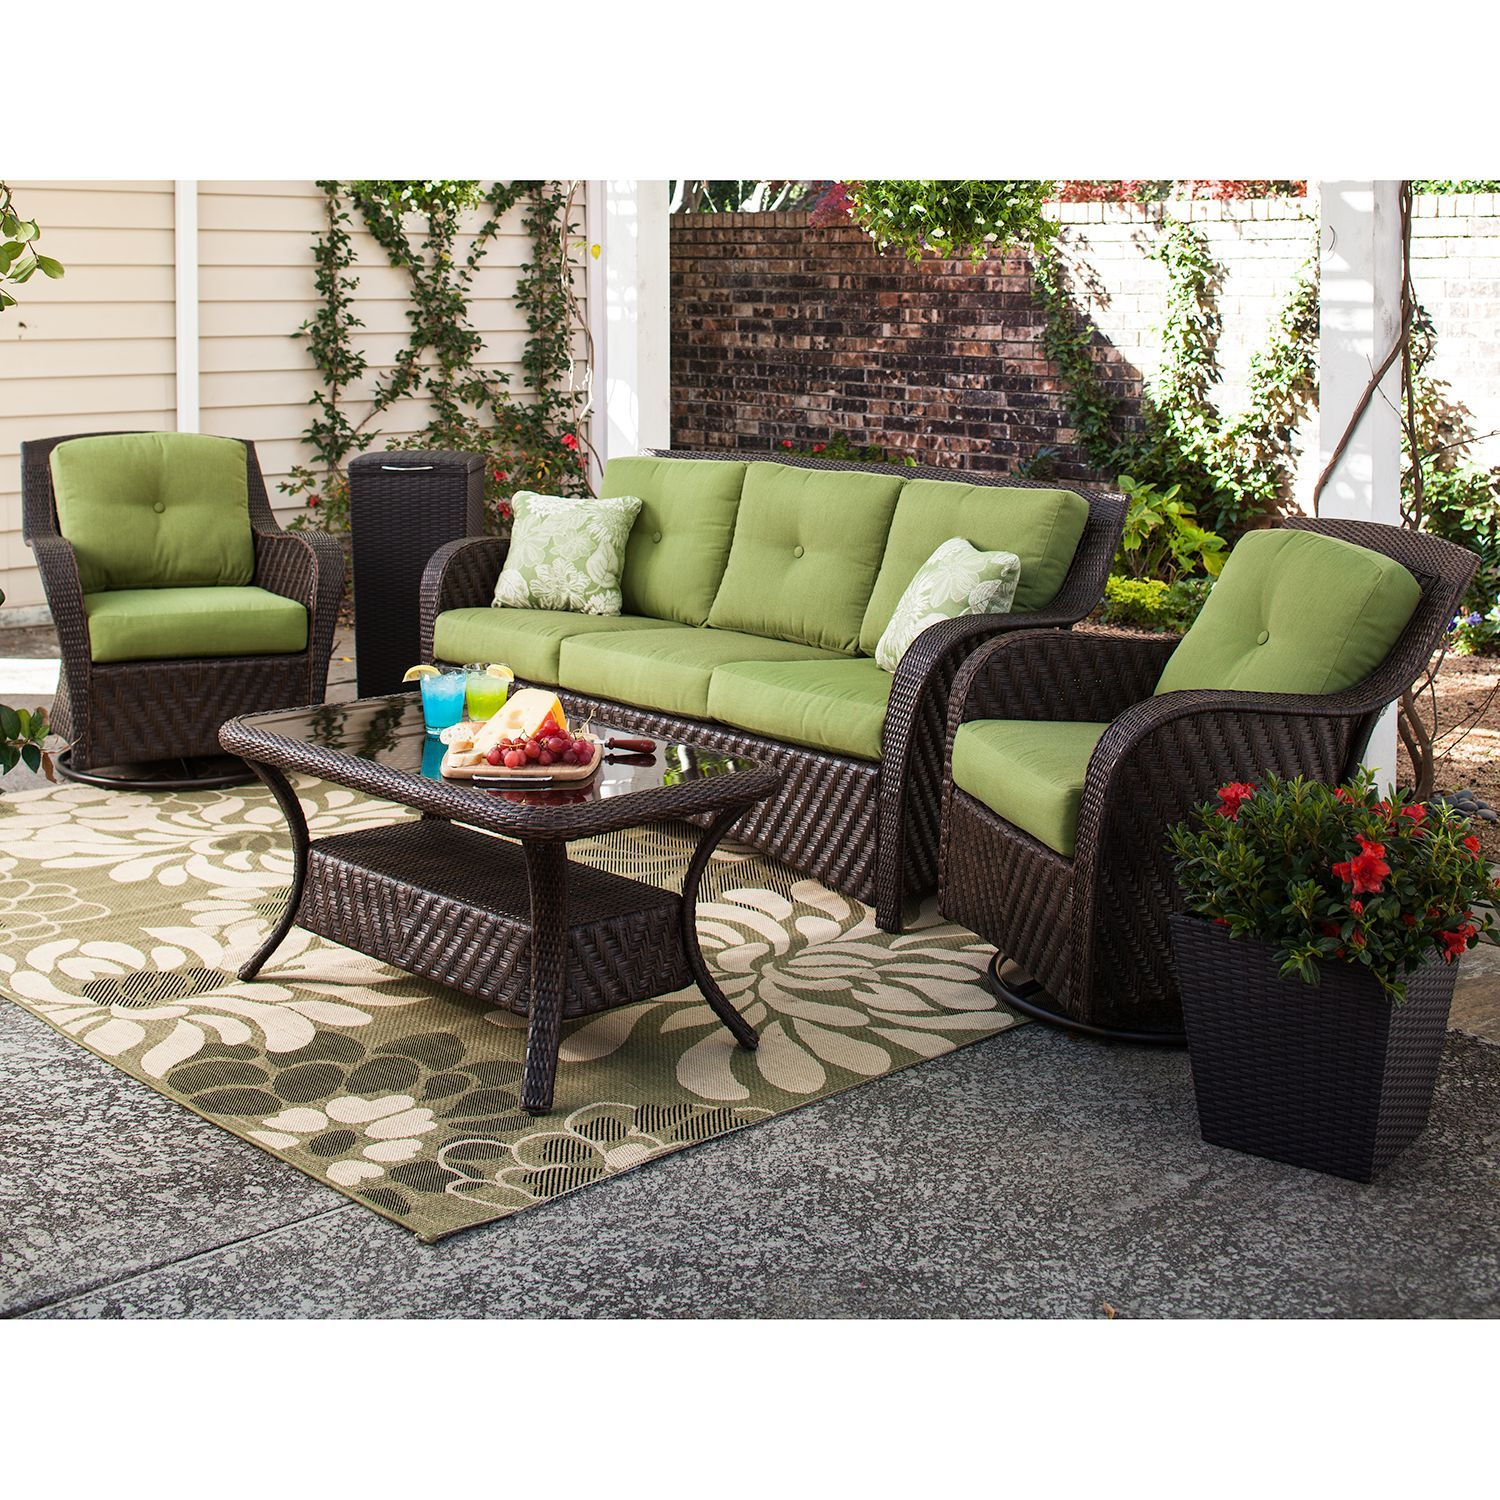 Newport Outdoor Seating Set Turf 4 Pc Sam S Club With Images Outdoor Seating Set Outdoor Furniture Sets Outdoor Furniture